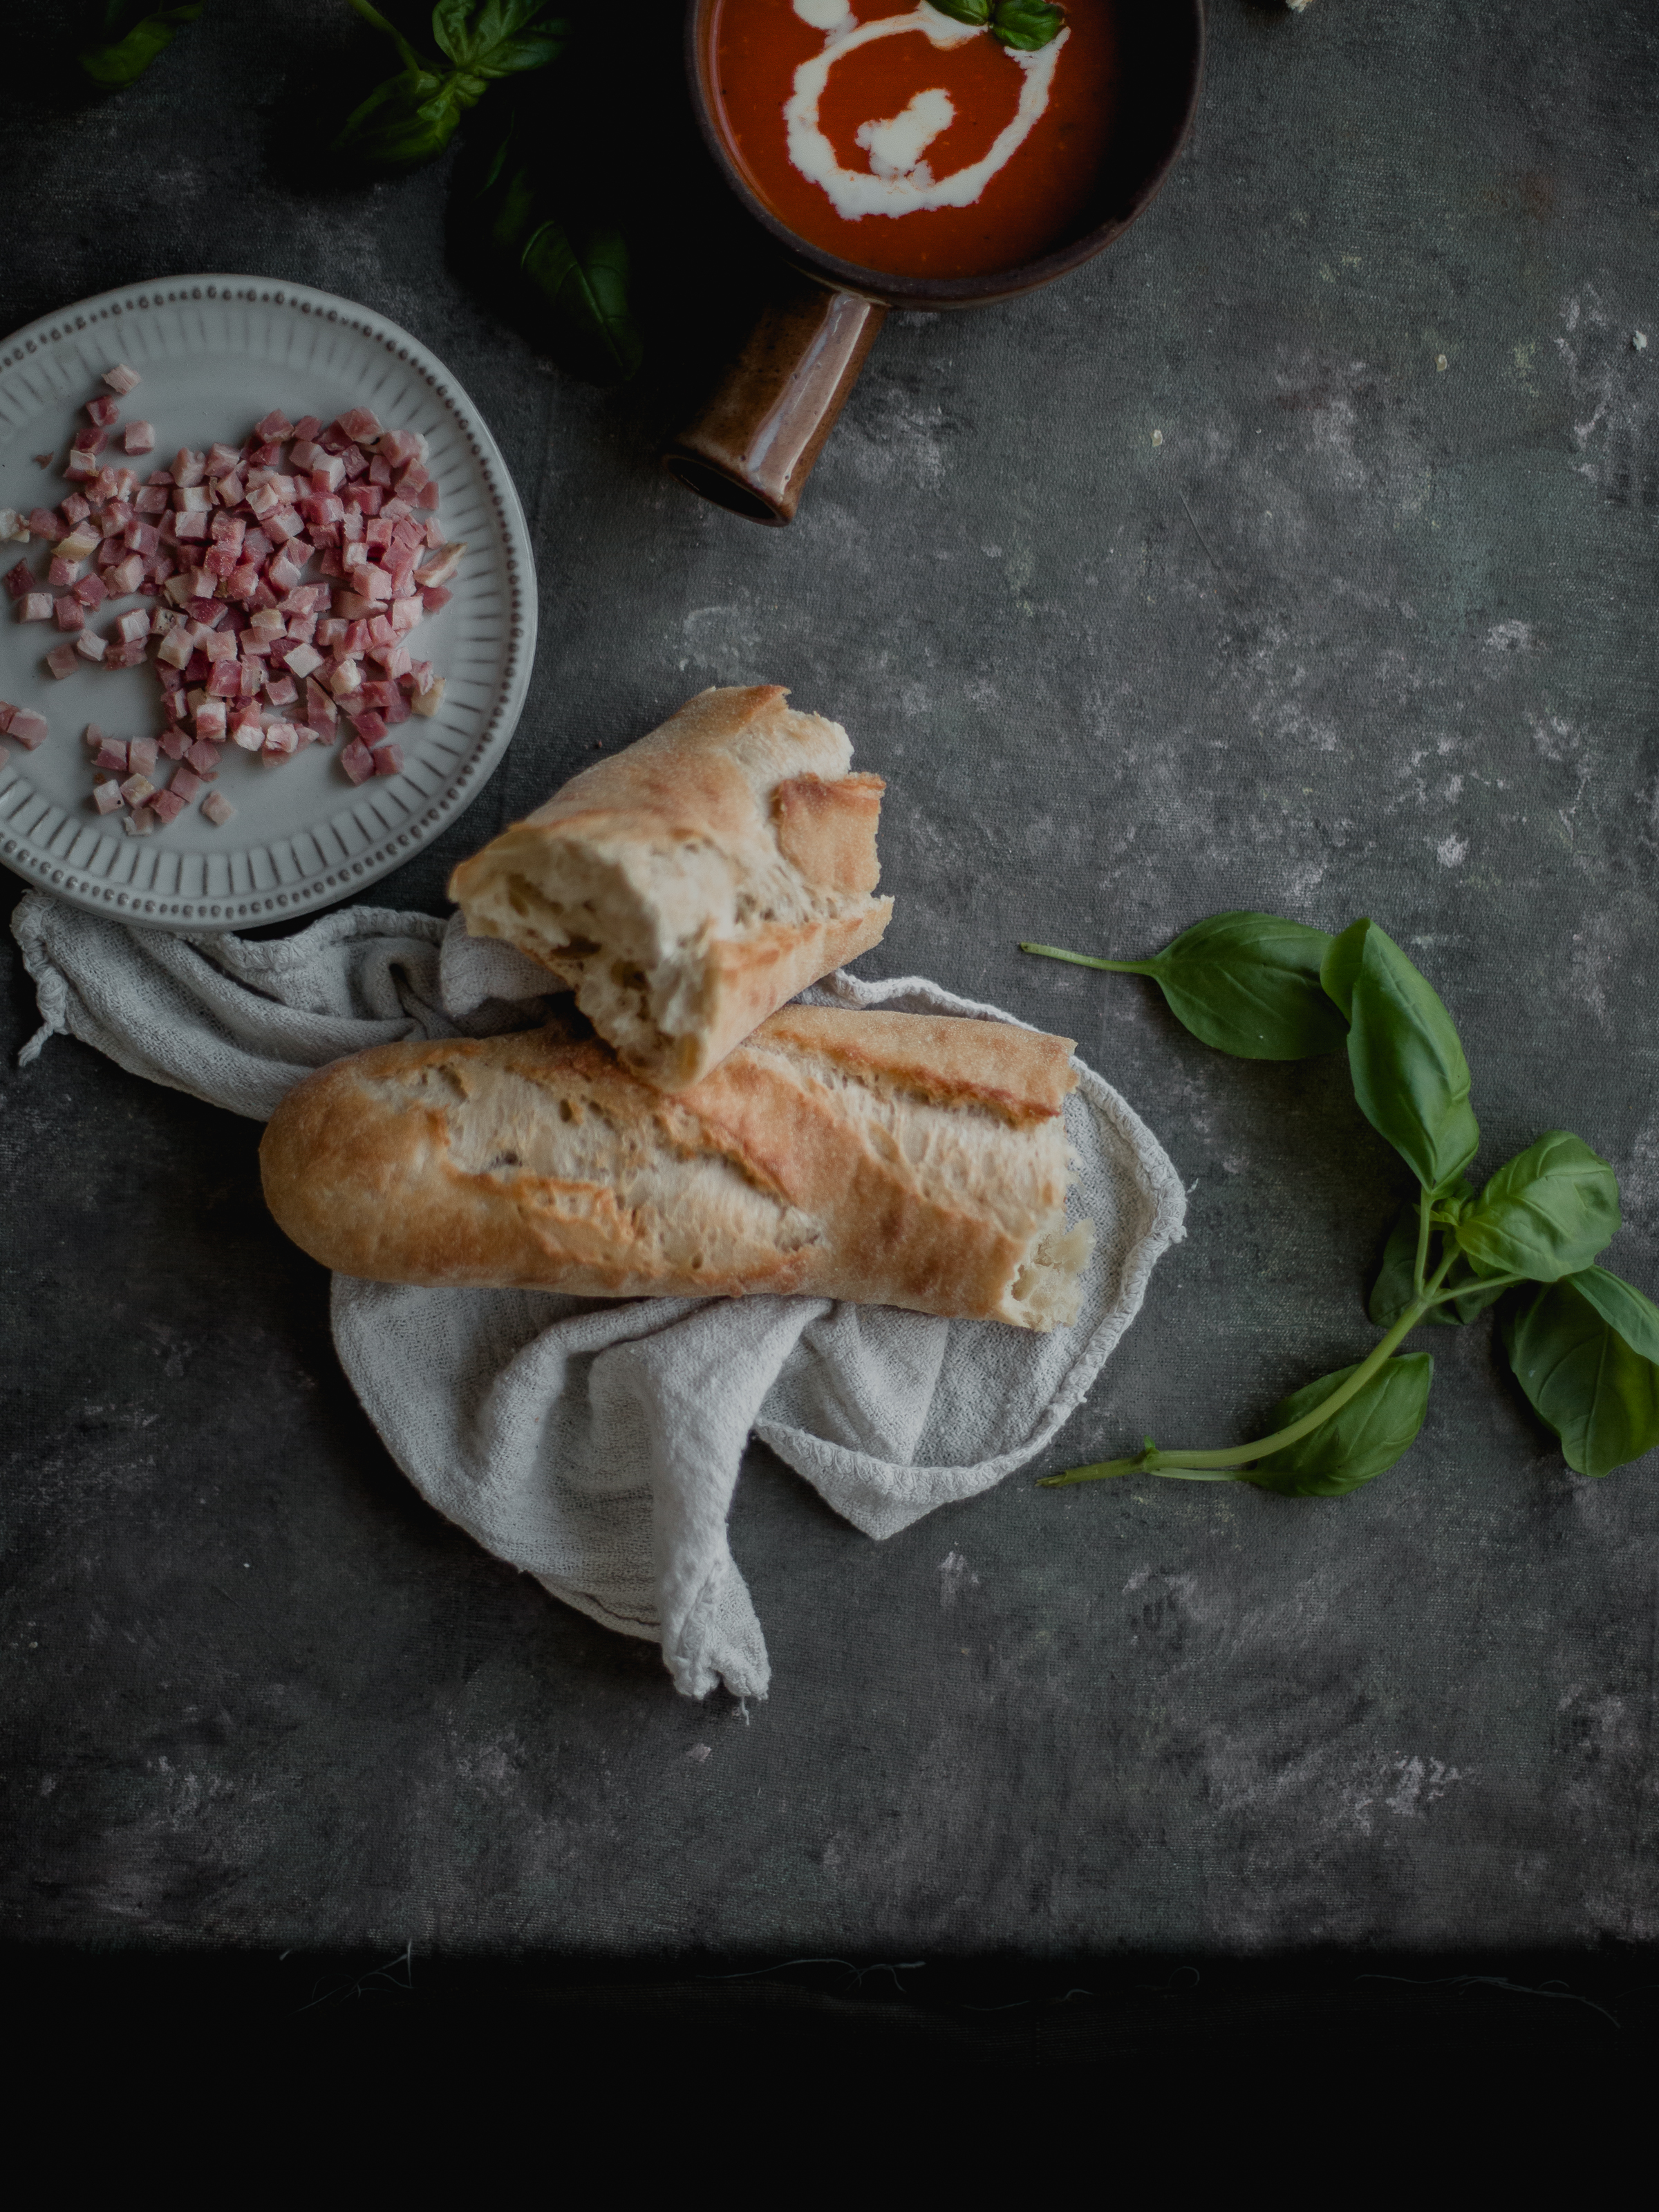 baguette | from scratch, mostly blog